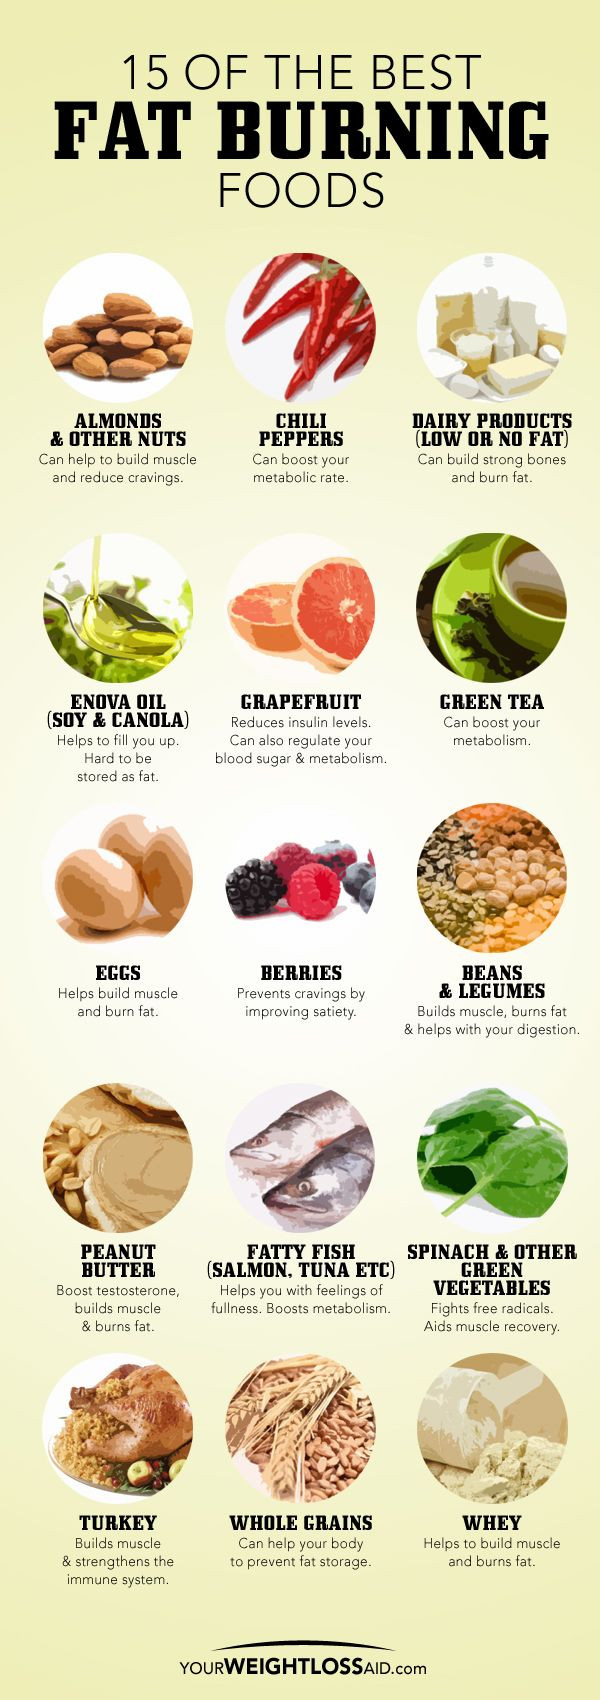 Fat Burning Foods Belly Recipes  7 Steps to Weight Loss for Men Over 40 Age The General Post